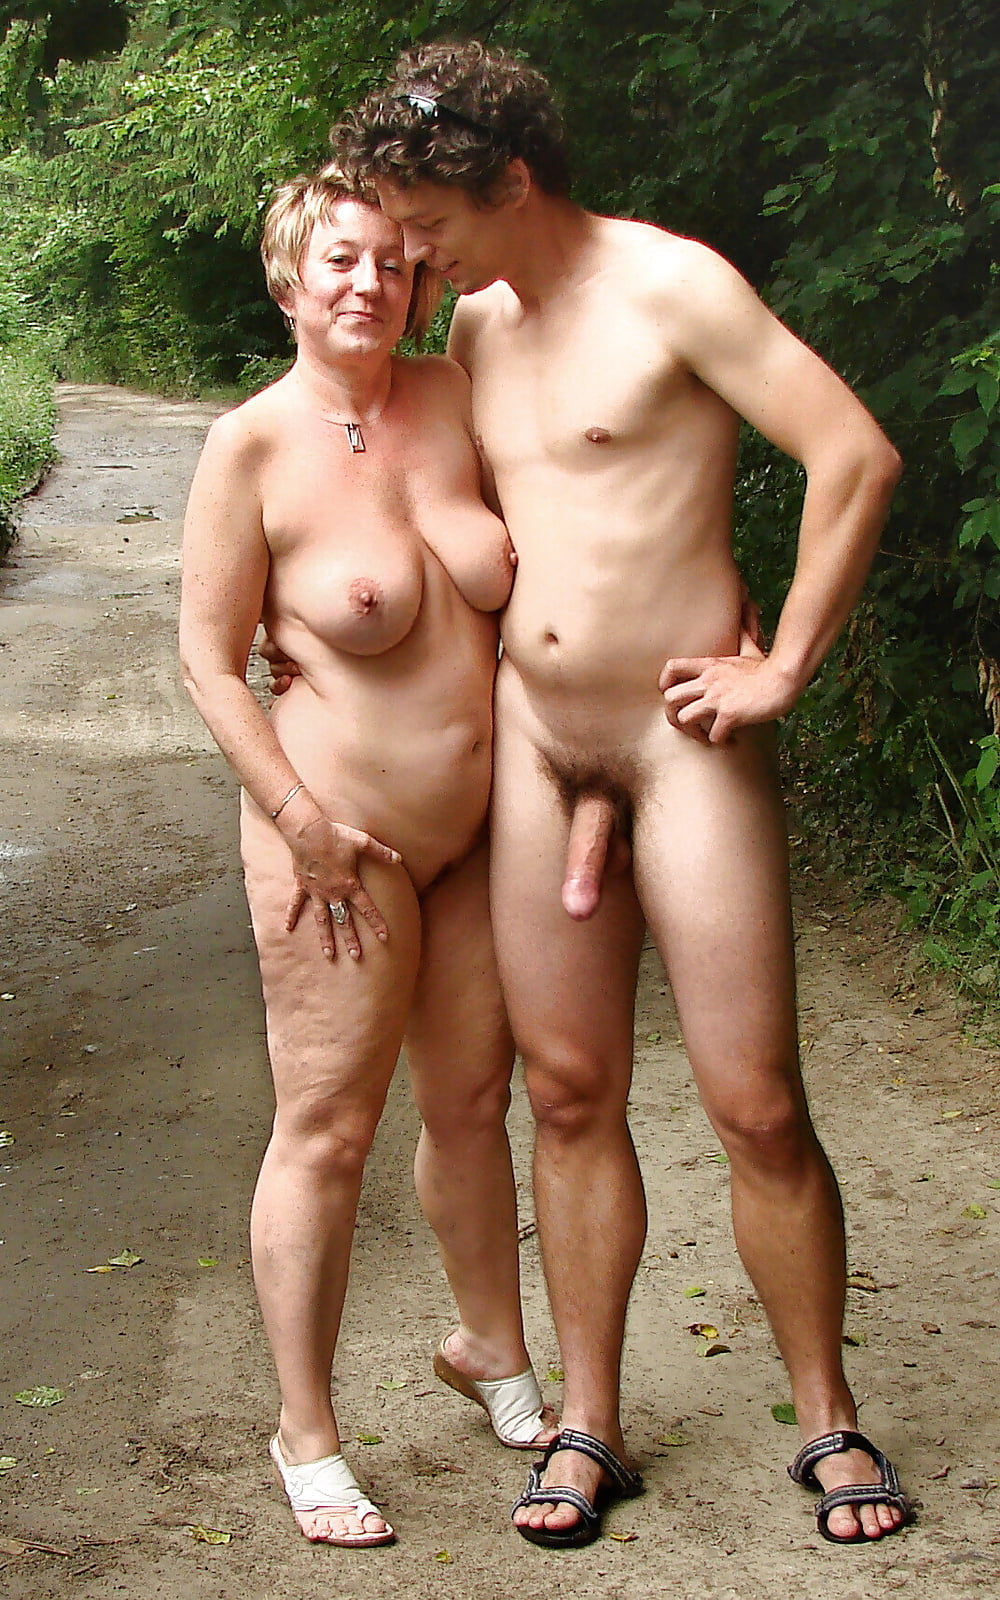 real-nudist-pictures-couples